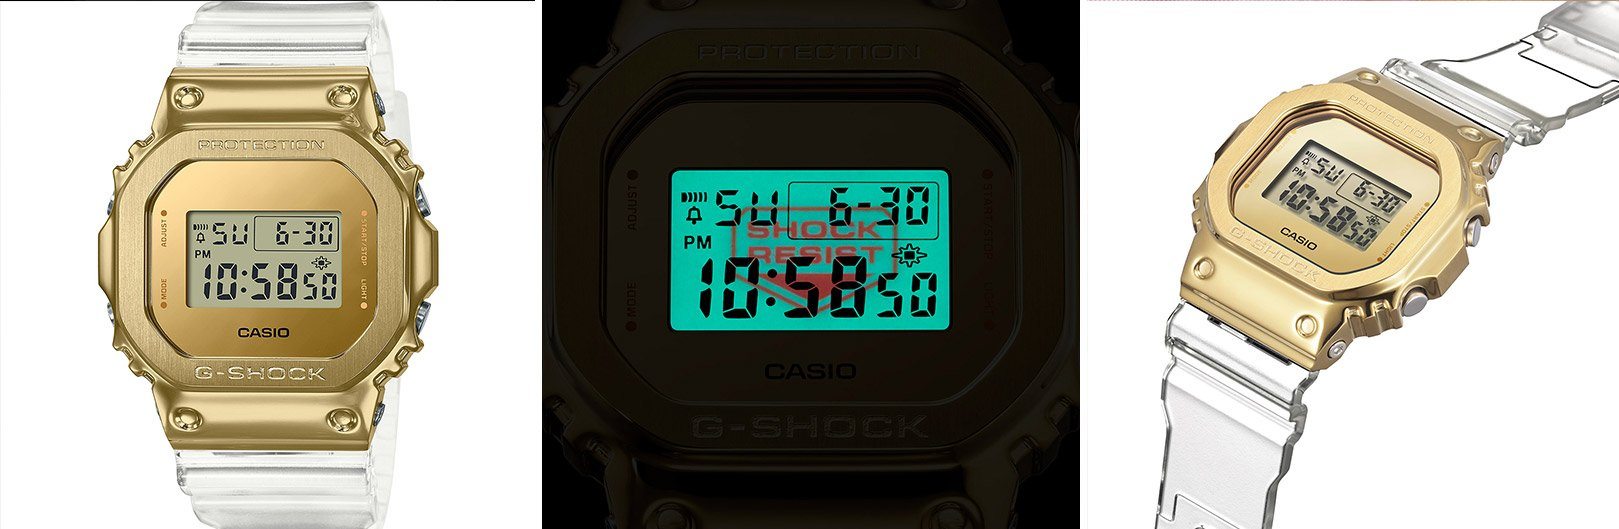 GM5600SG-9 from our best g shock square watches for daily wear